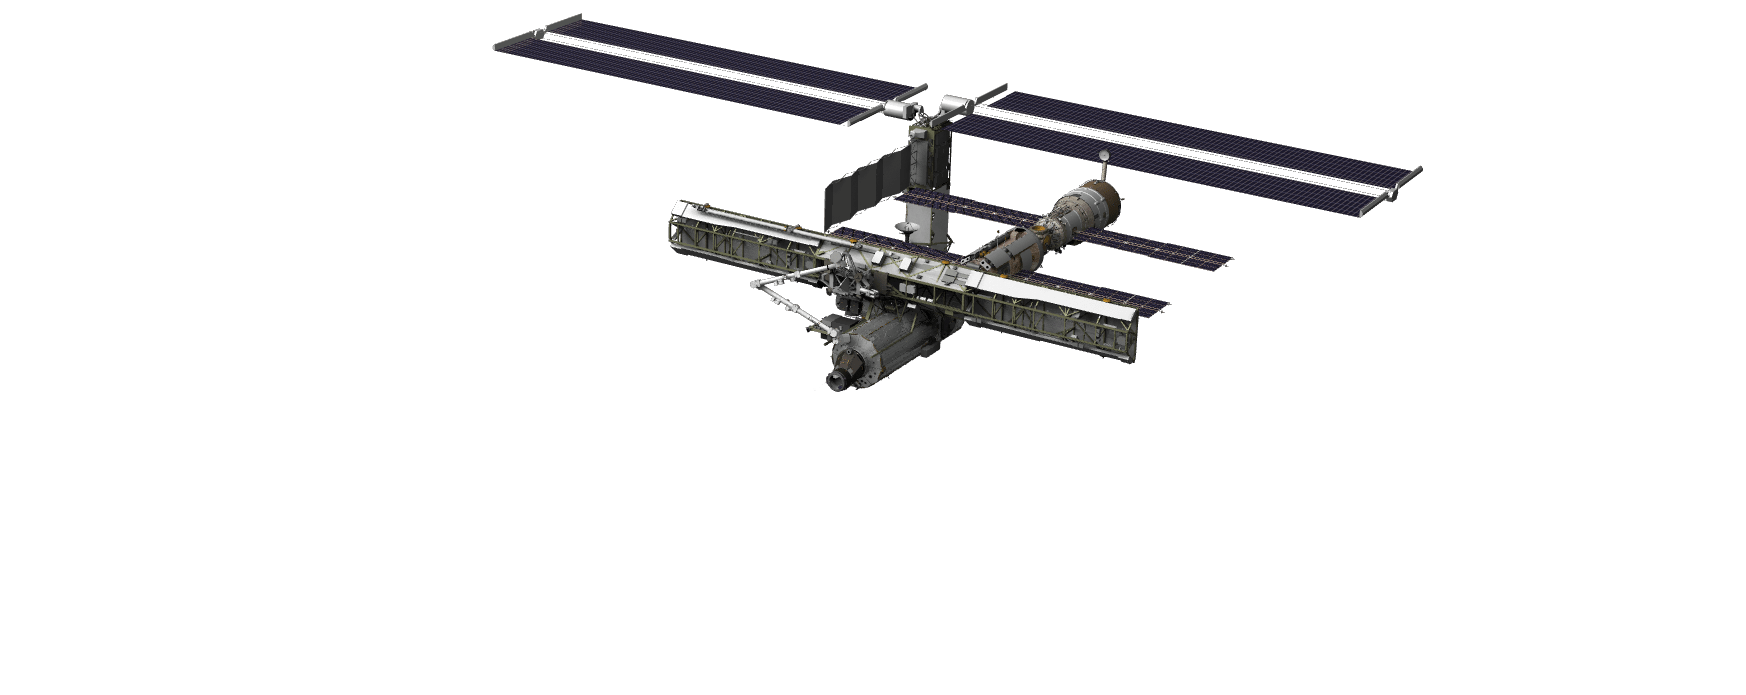 Deconstructing the International Space Station